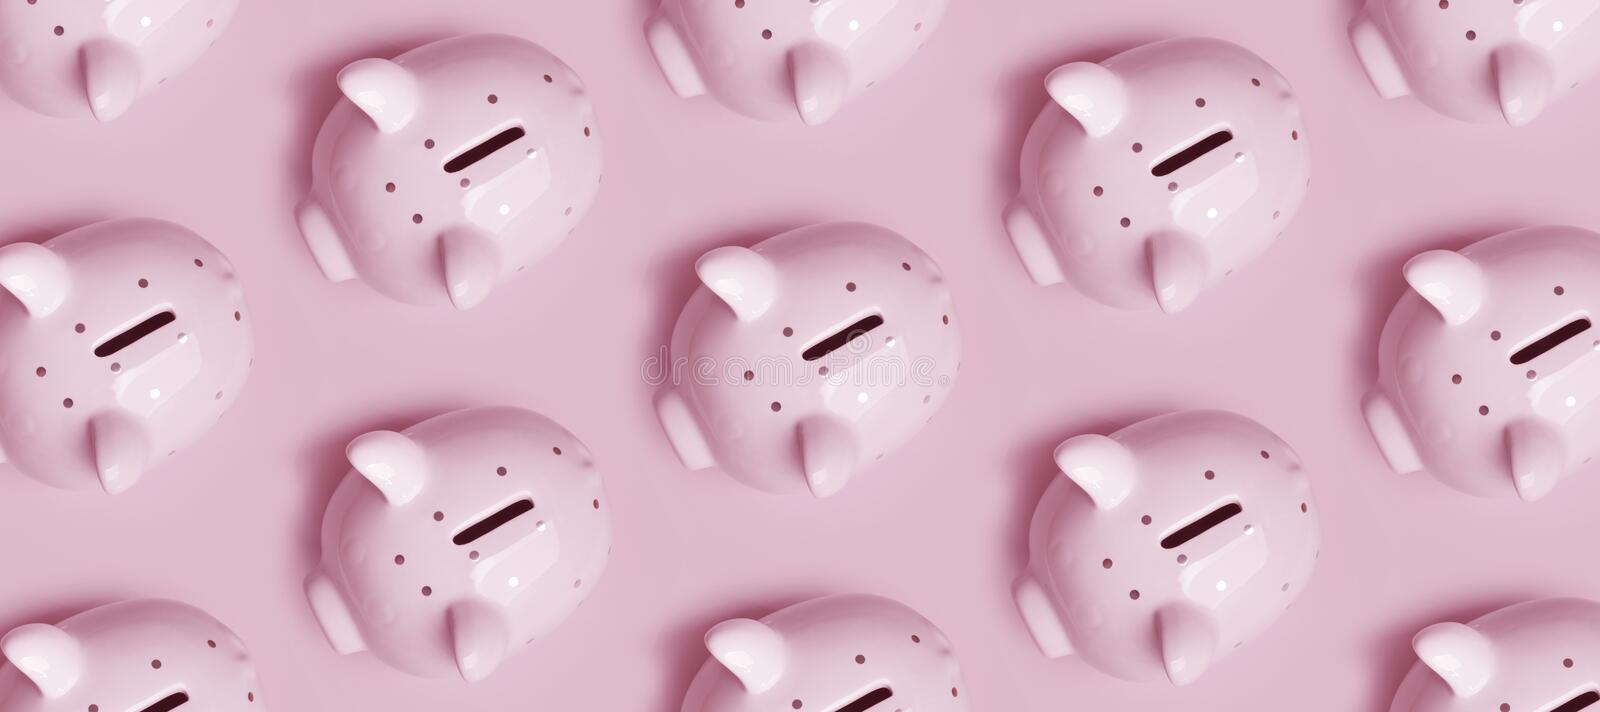 Many piggy banks in rows on pink background, top view royalty free stock photography